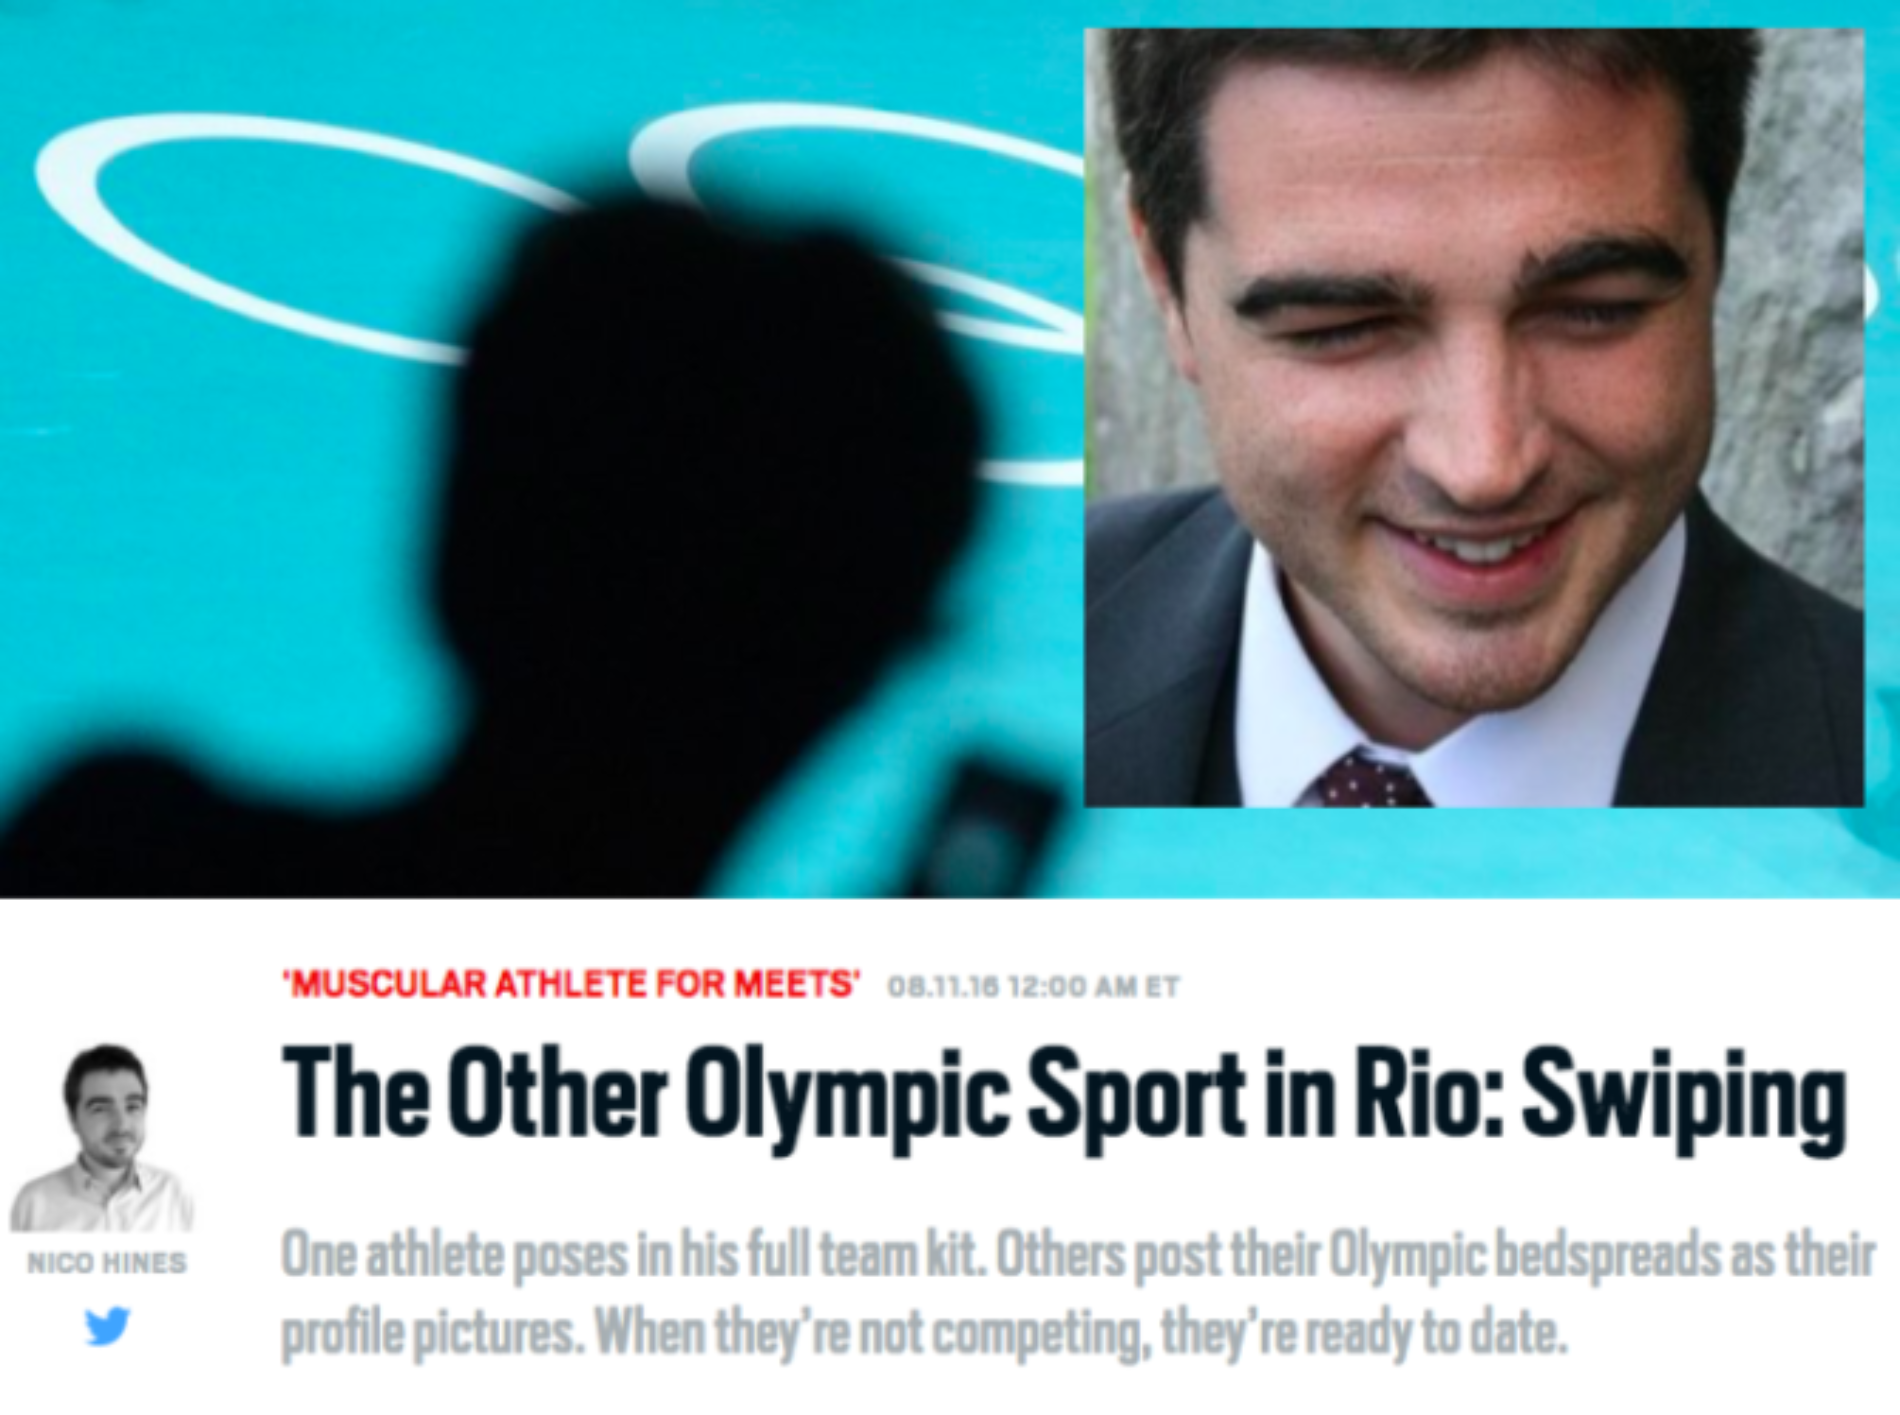 Journalist Who Used Grindr To Out Gay Athletes In Rio Receives Backlash